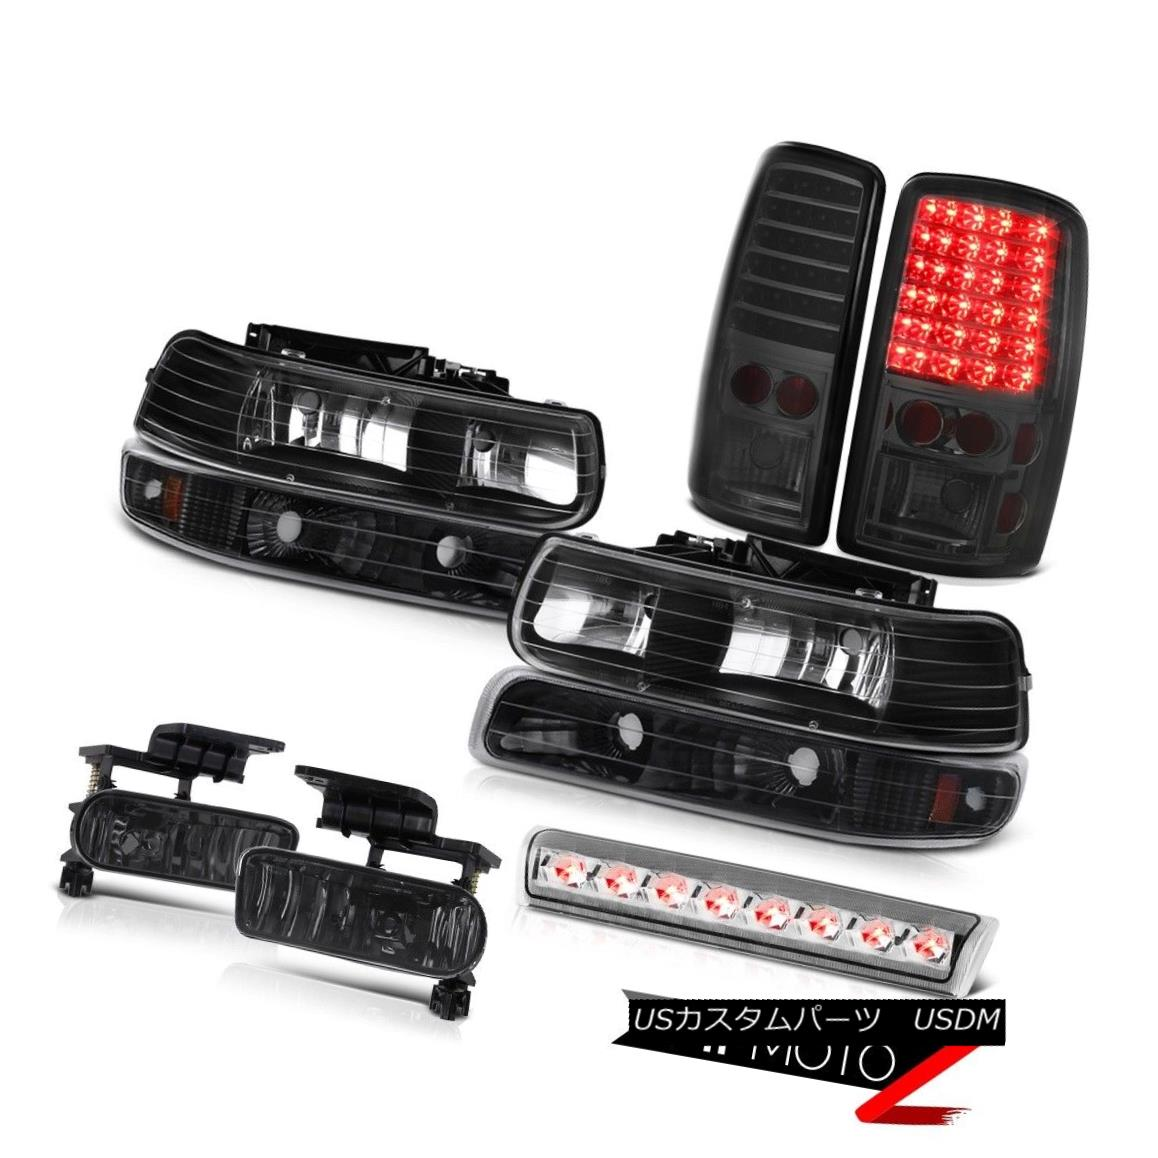 ヘッドライト 2000-2006 Chevy Tahoe LT Chrome 3rd brake light foglamps taillights bumper lamp 2000-2006 Chevy Tahoe LT Chrome第3ブレーキライトフォグランプテールライトバンパーランプ